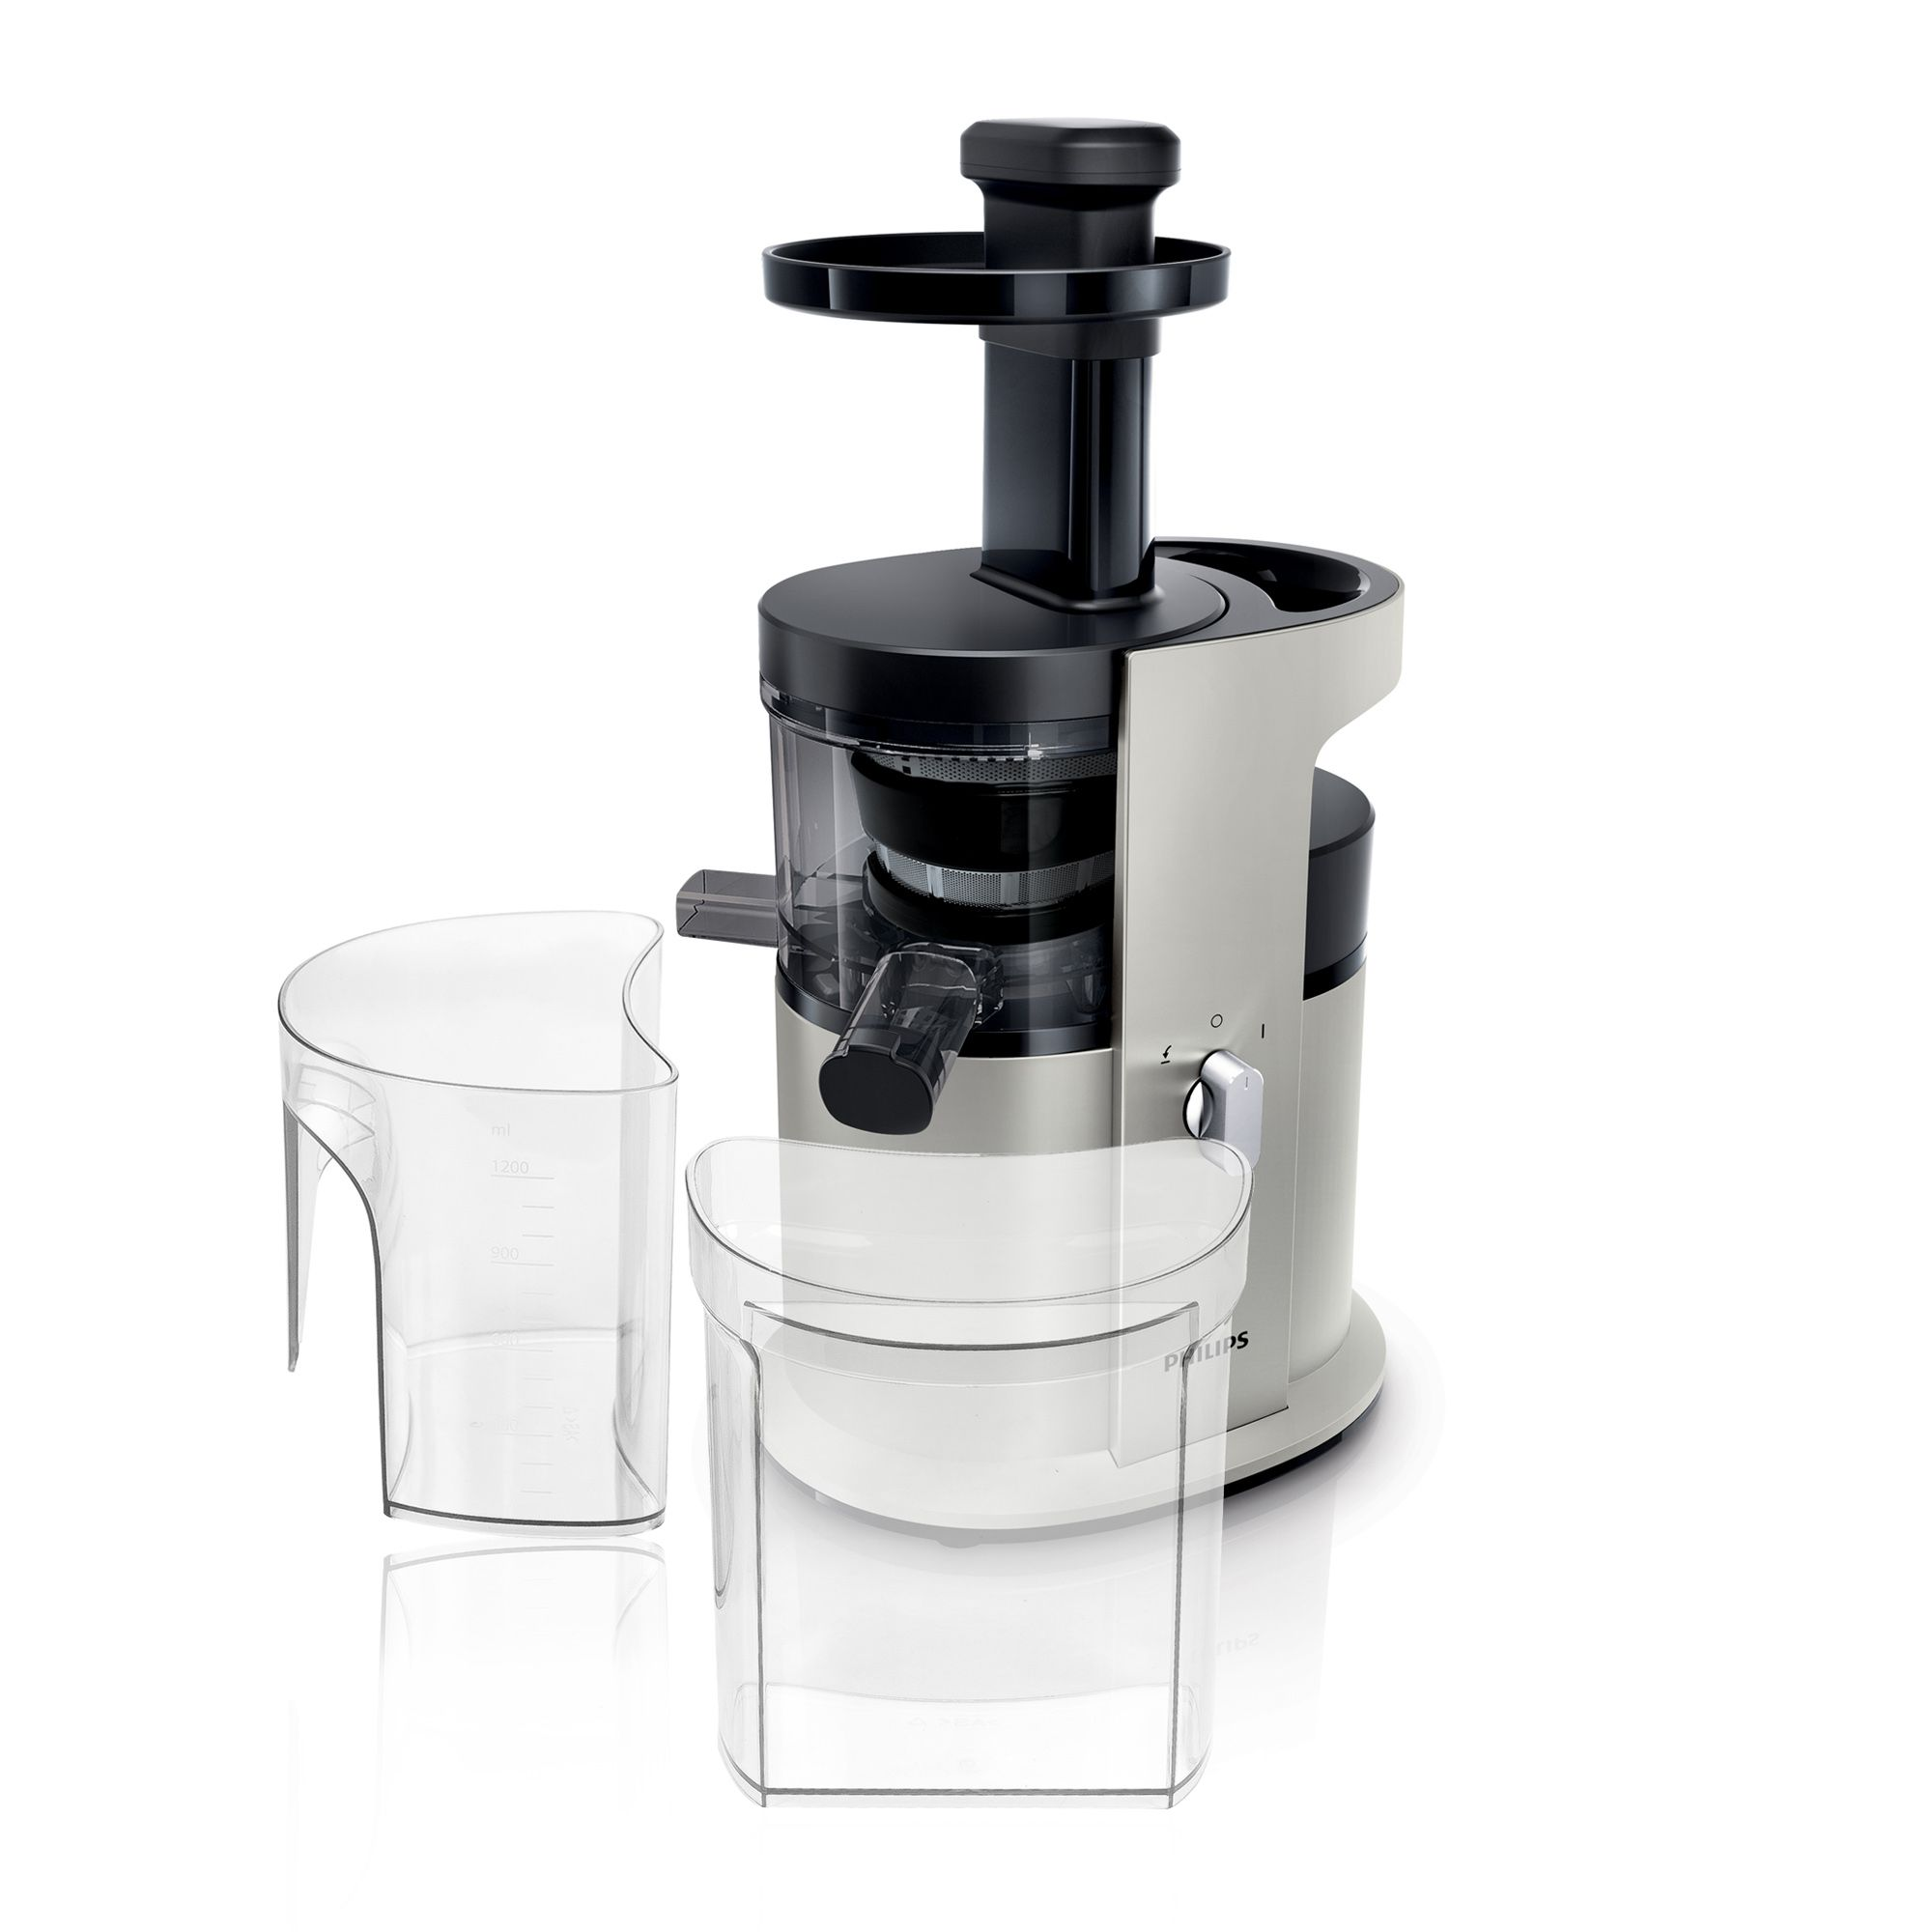 Philips Avance Slow Juicer Estrattore Di Succhi : Avance Slow Juicer estrattore di succhi - QvC Italia